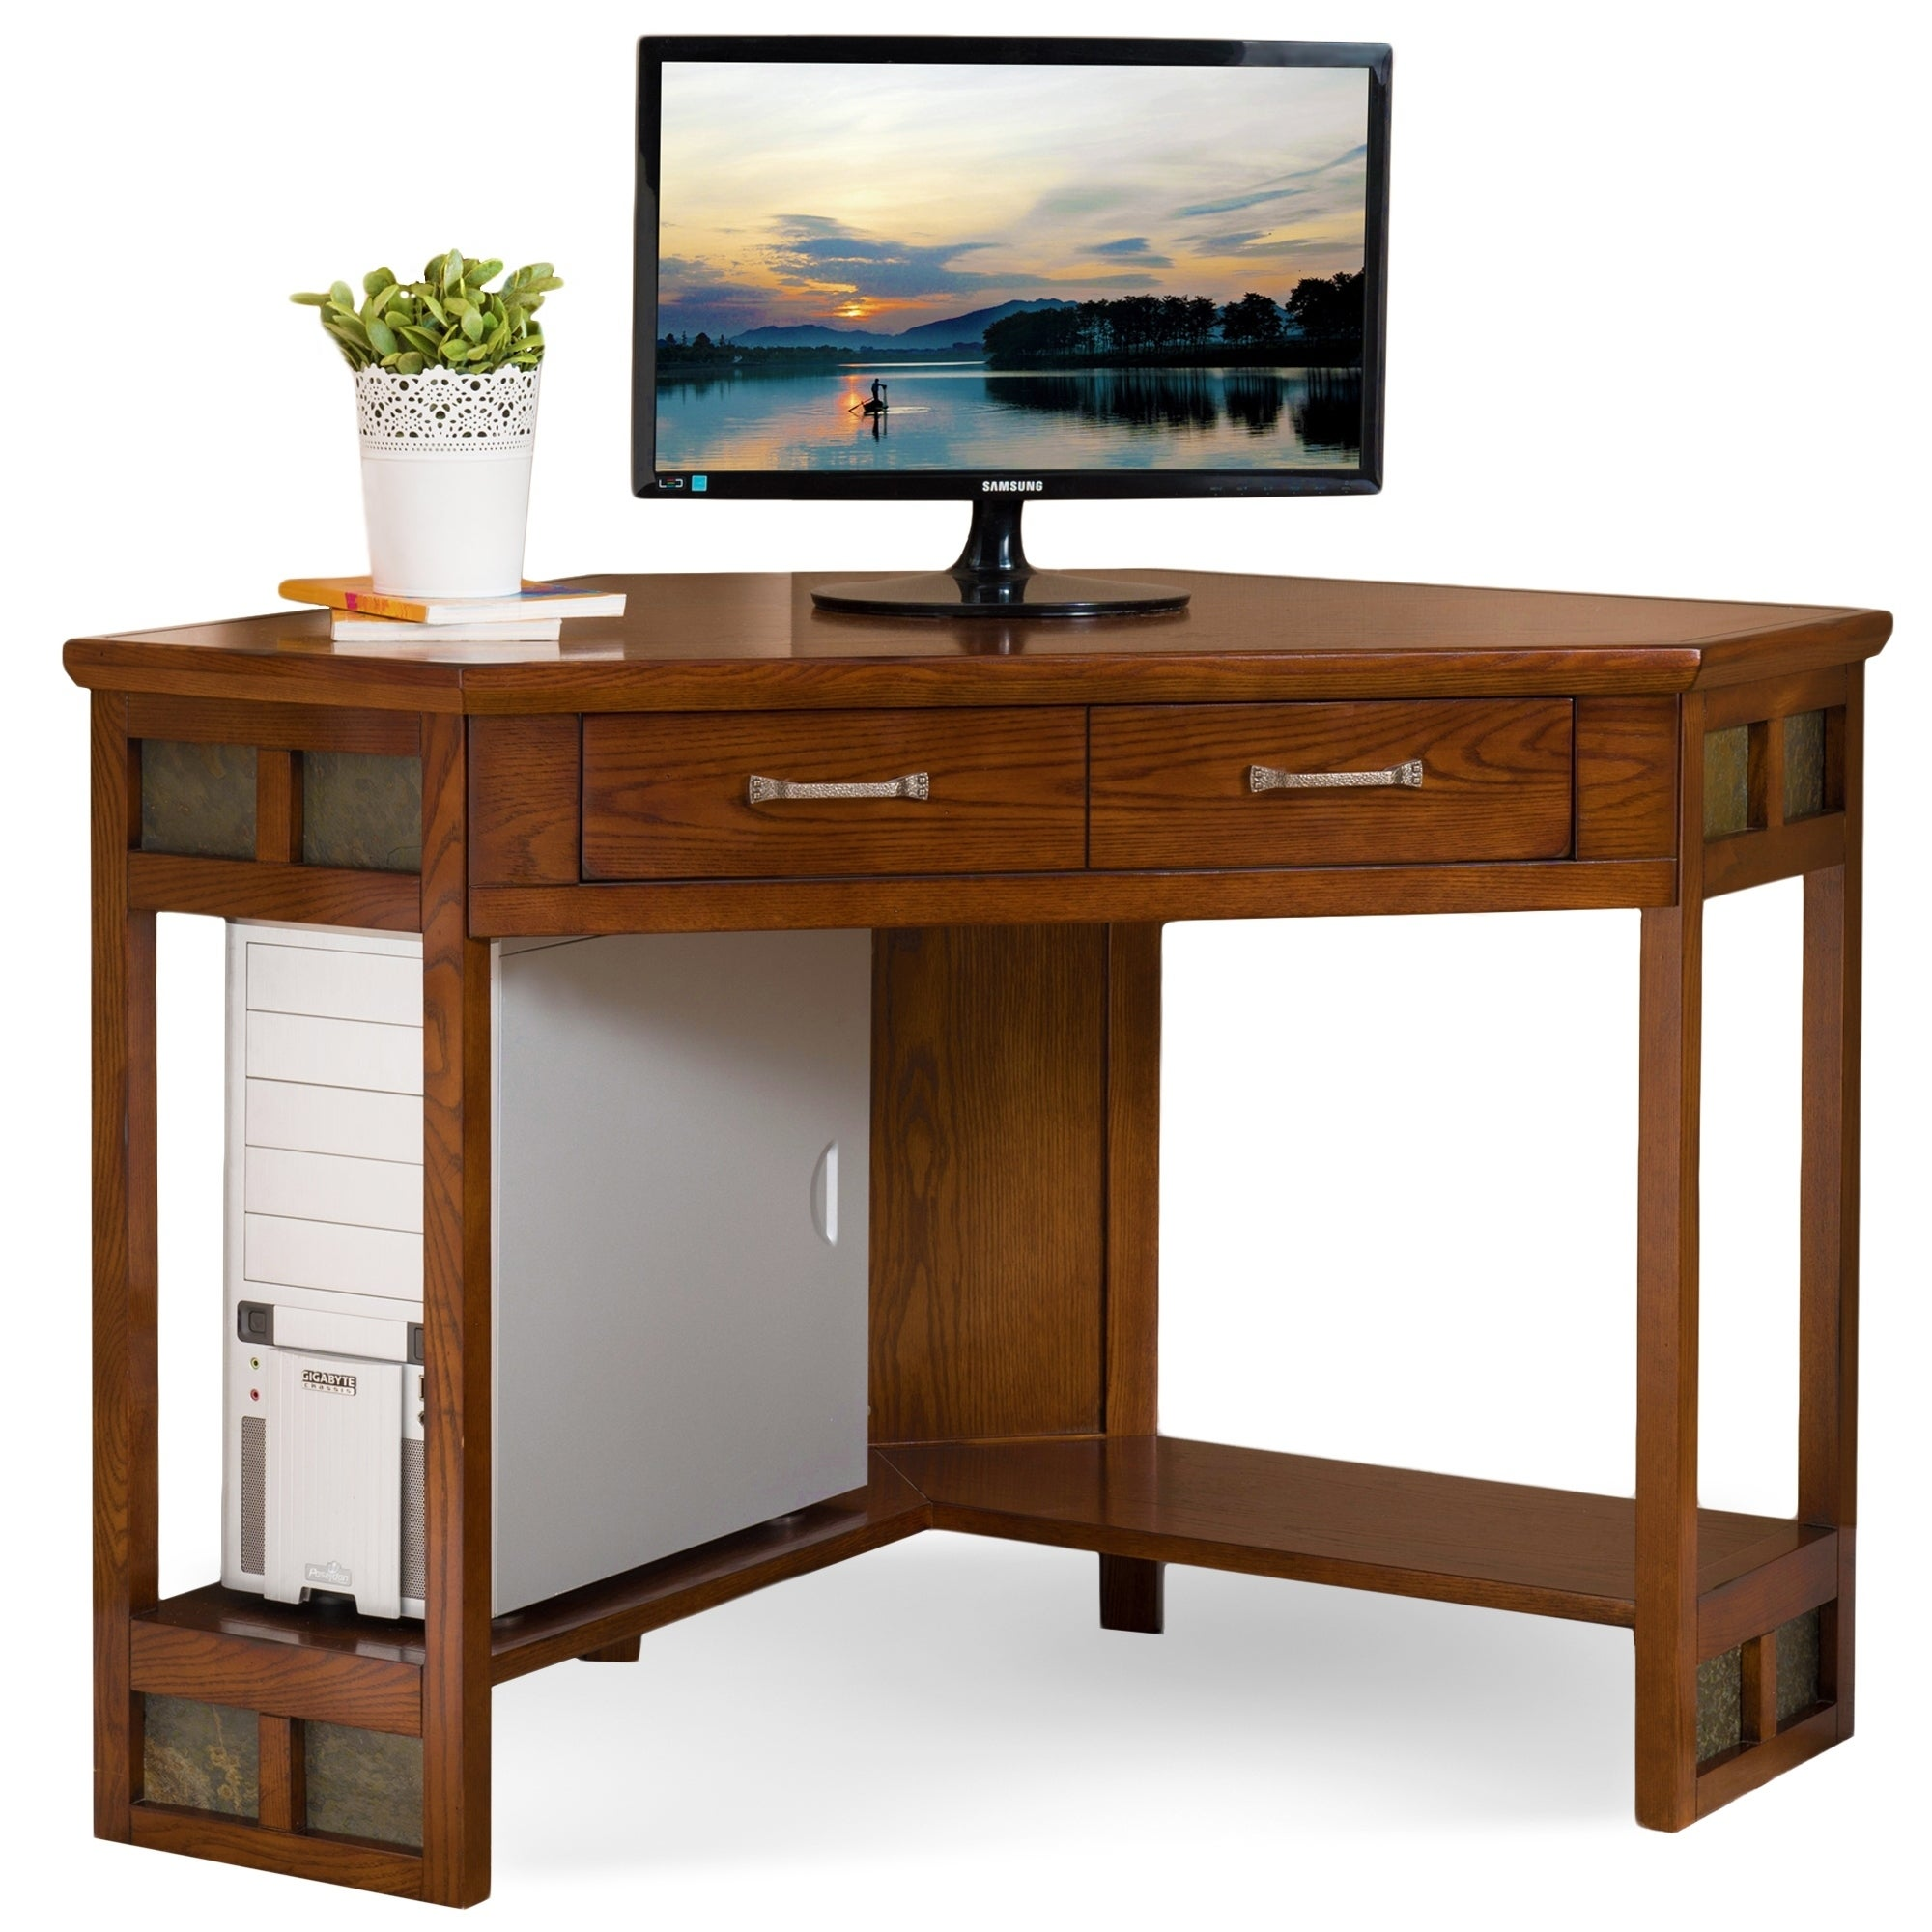 drawer products product student c o oak modern computer odc desk